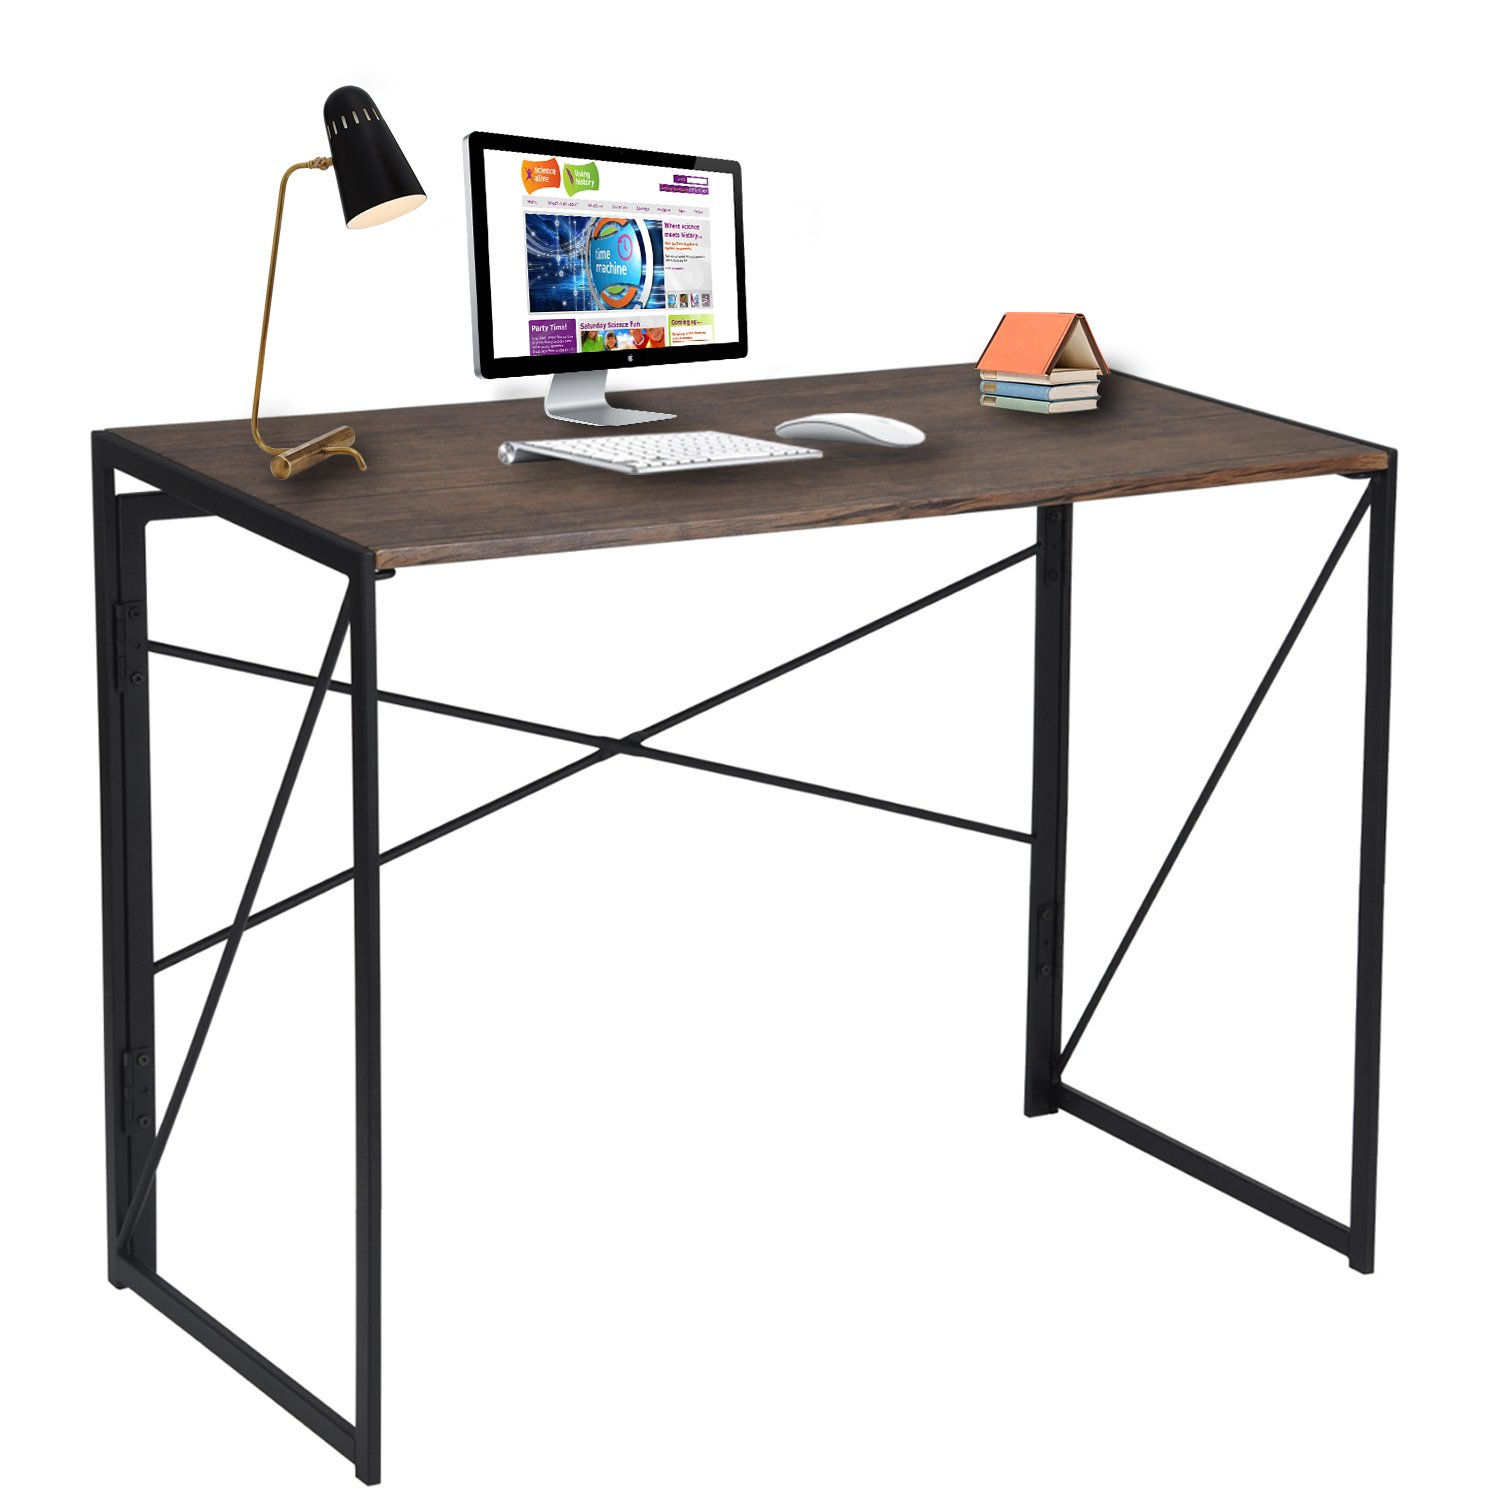 Writing Computer Desk Modern Simple Study Desk Industrial Style Folding Laptop Table for Home Office Brown Notebook Desk by Coavas